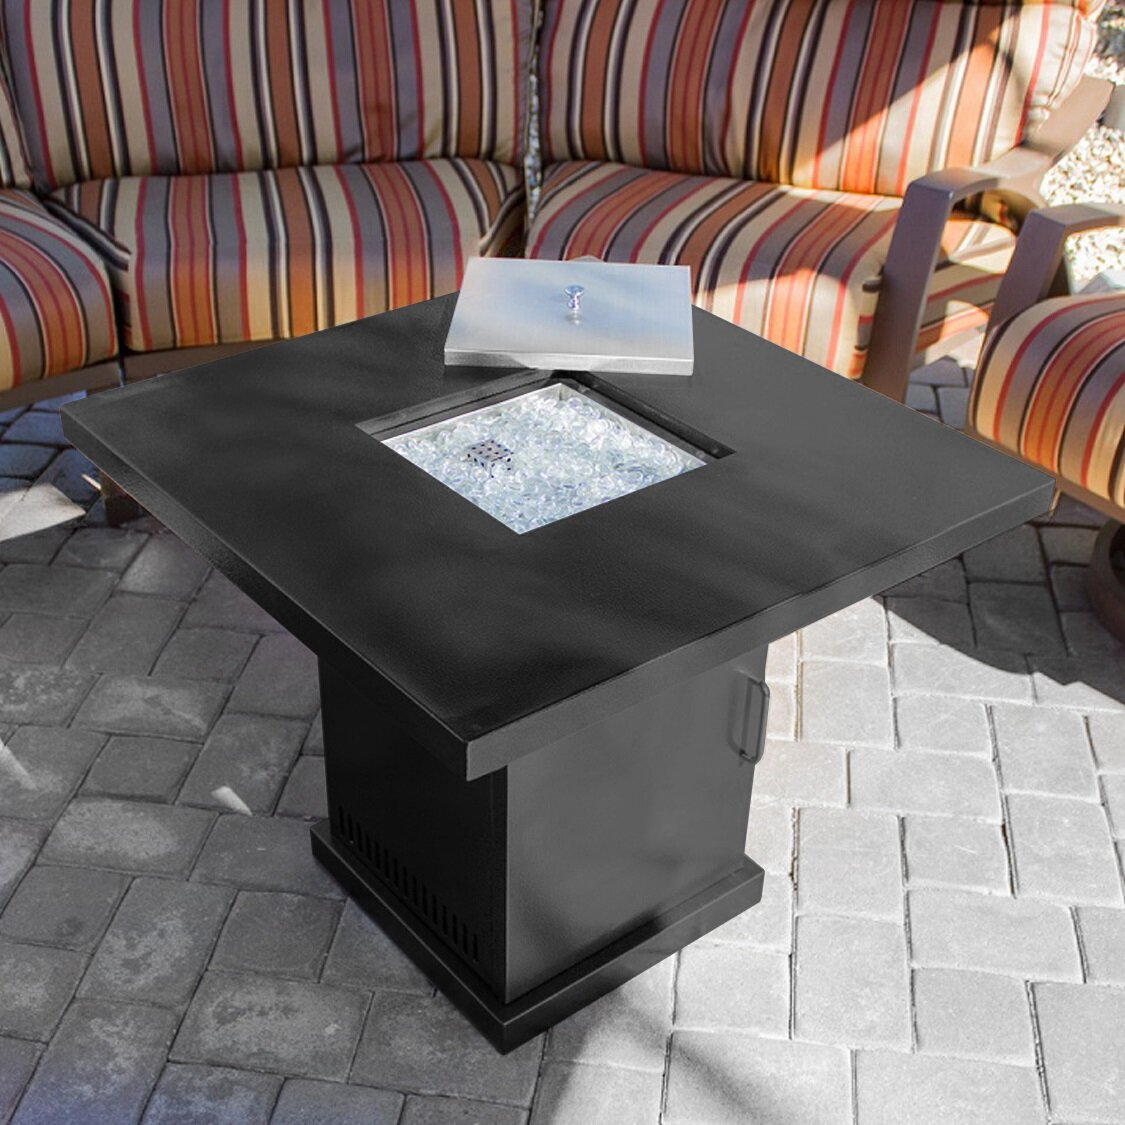 Outdoor Coffee Table Heater: Belleze 40,000 BTU Outdoor Table Patio Heater Fire Pit